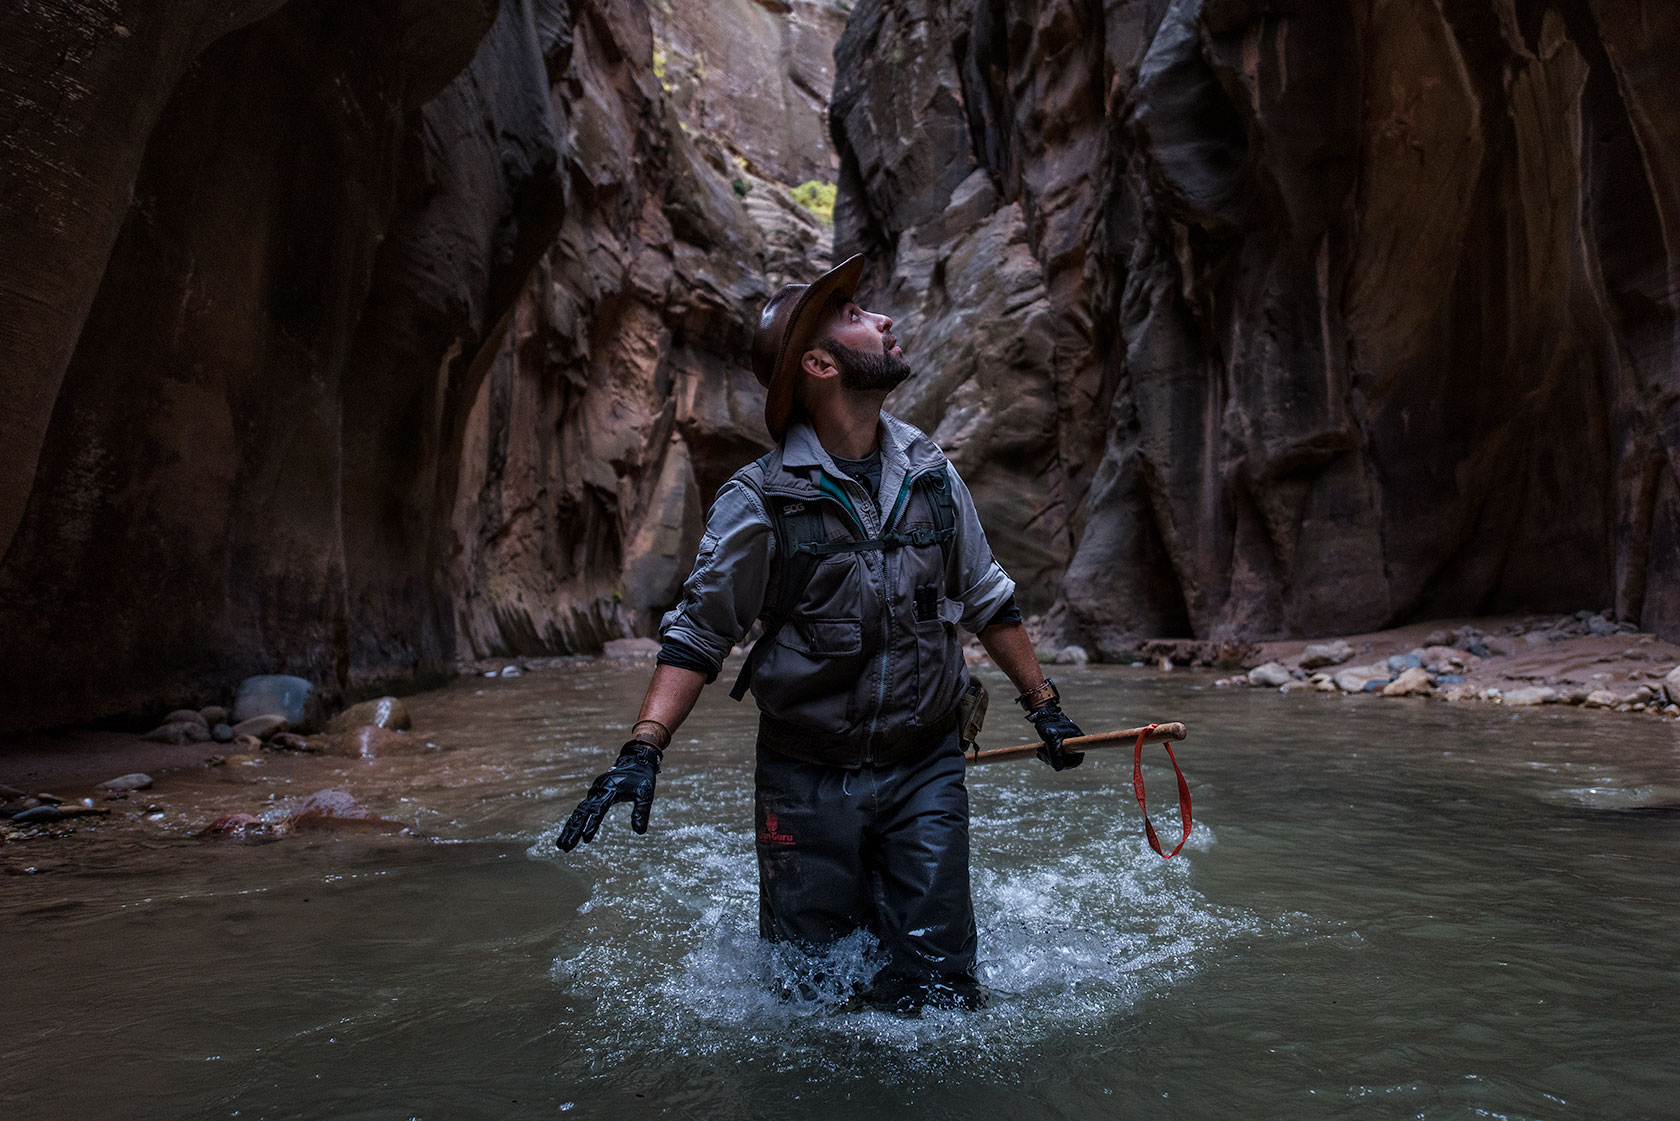 austin-trigg-brave-wilderness-utah-zion-Coyote-peterson-hikes-Narrows-canyon-river-walls.jpg